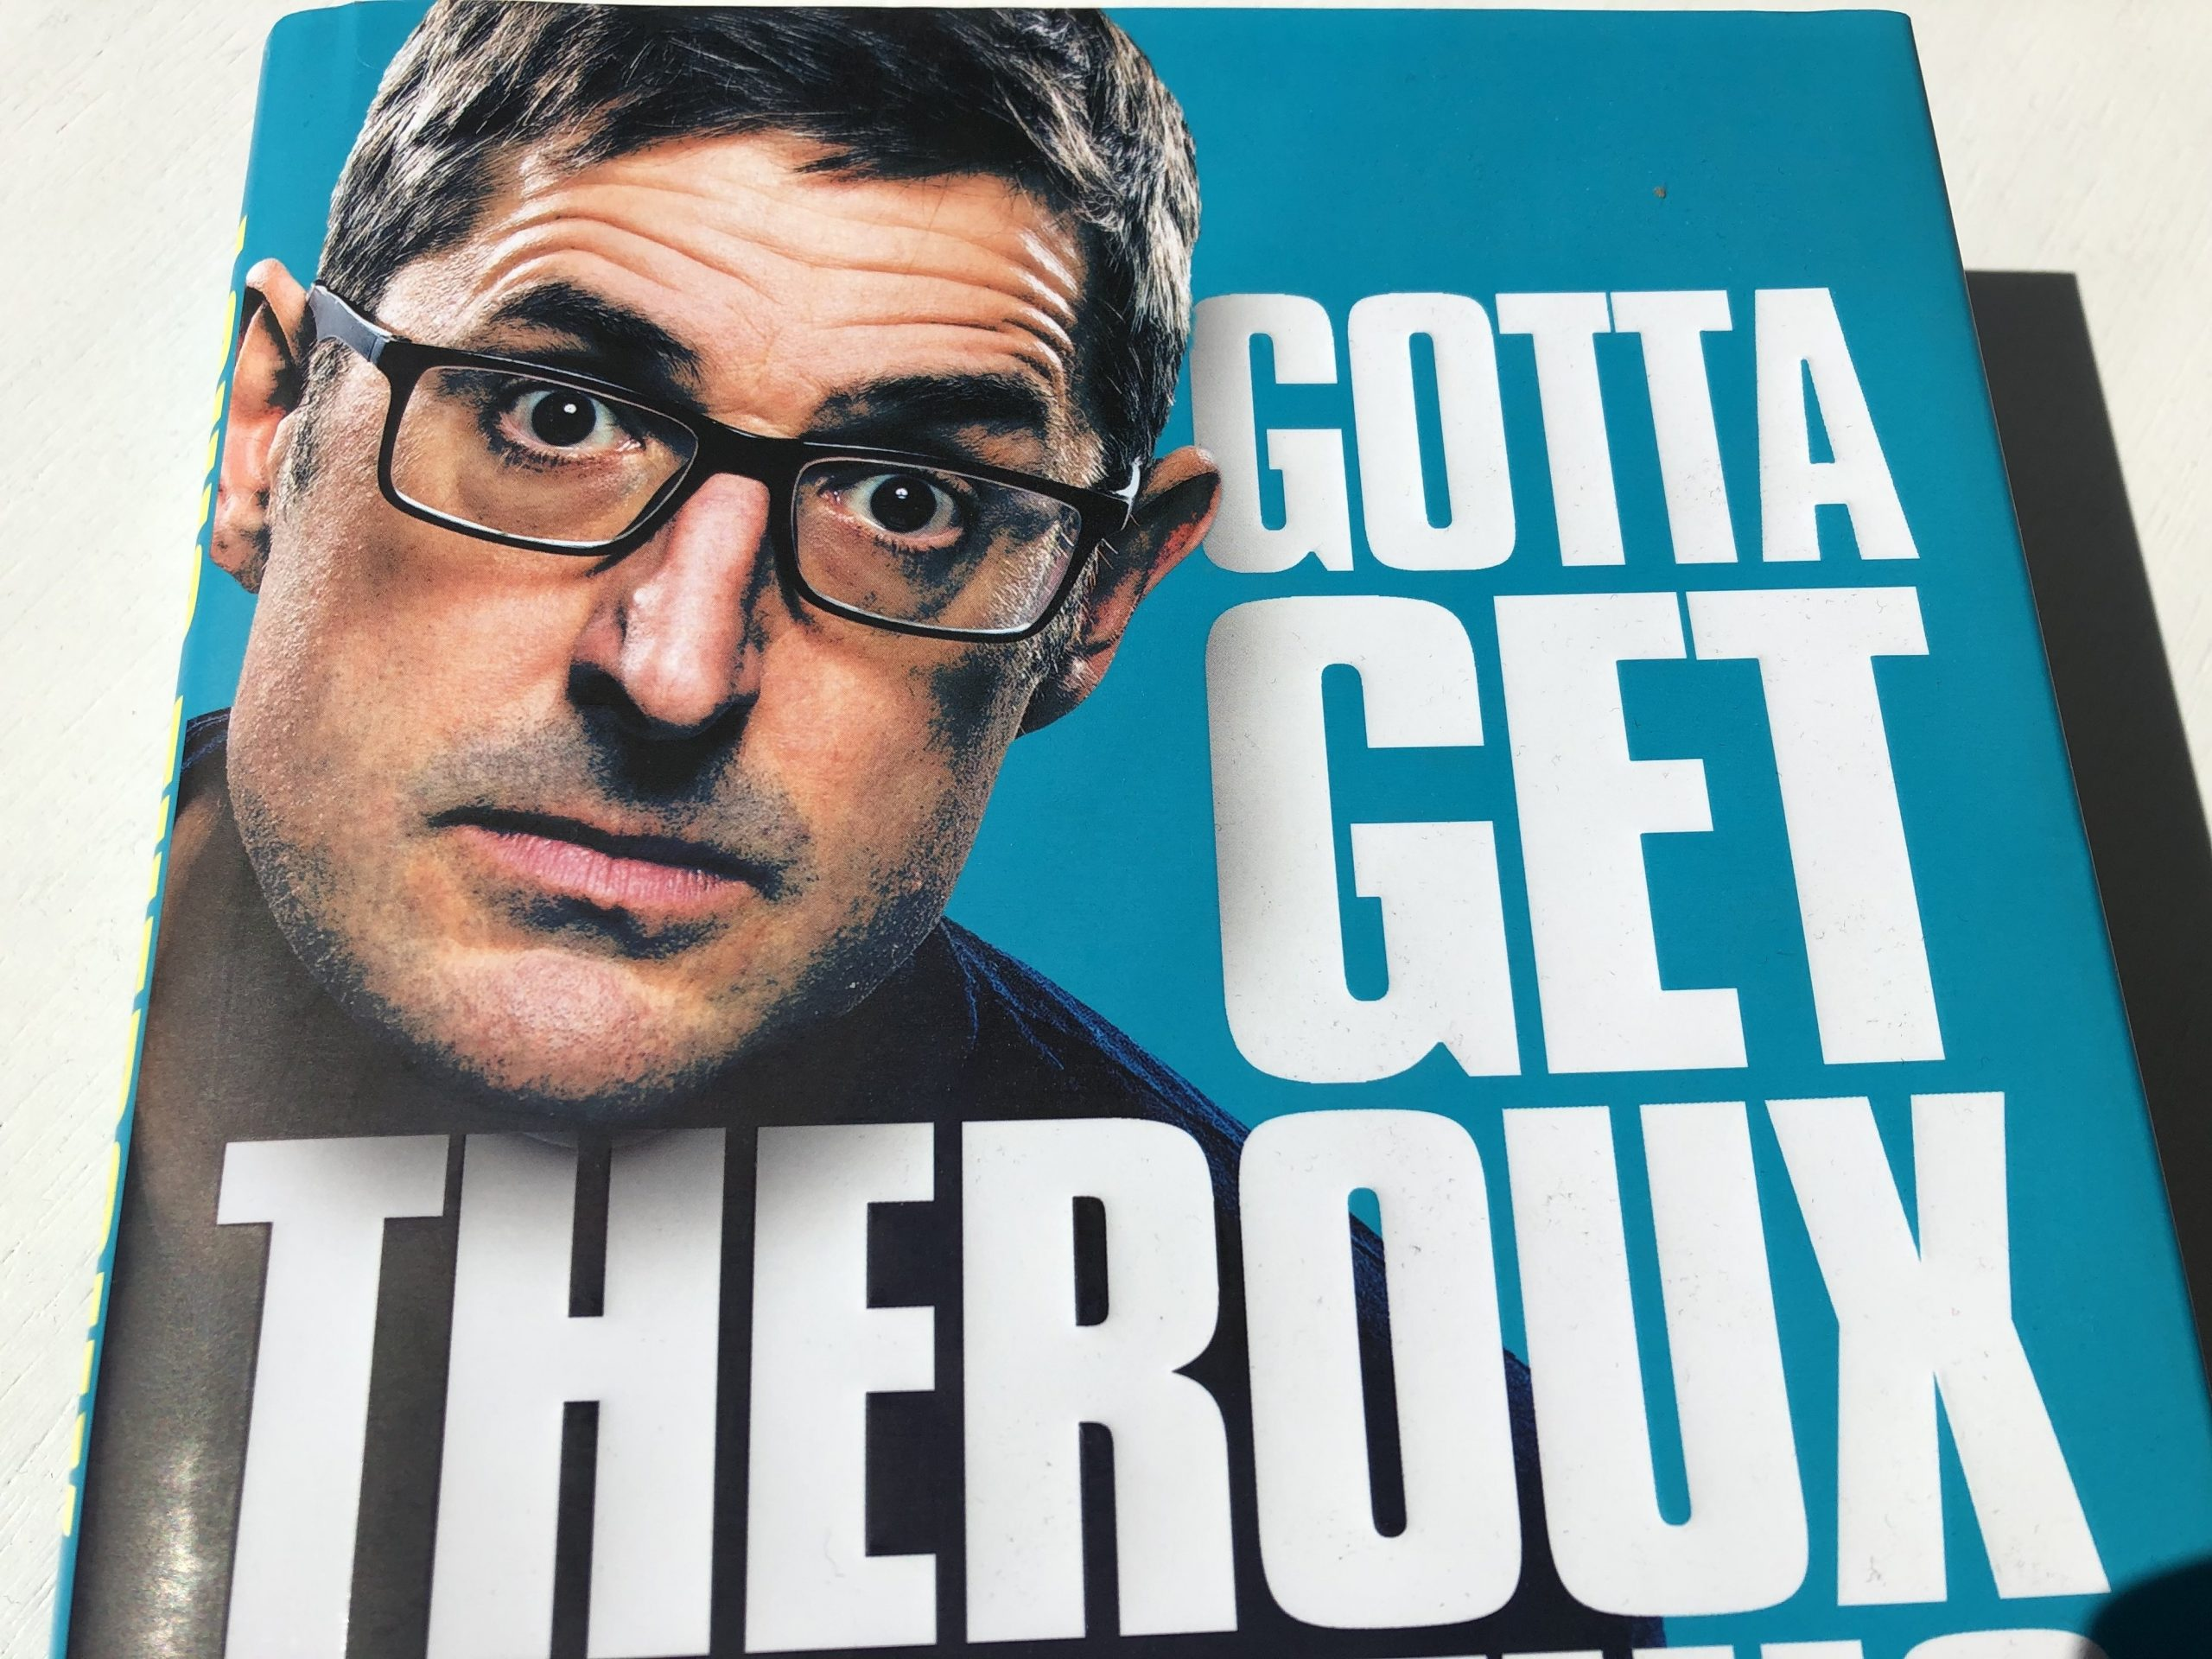 Gotta get theroux this book review